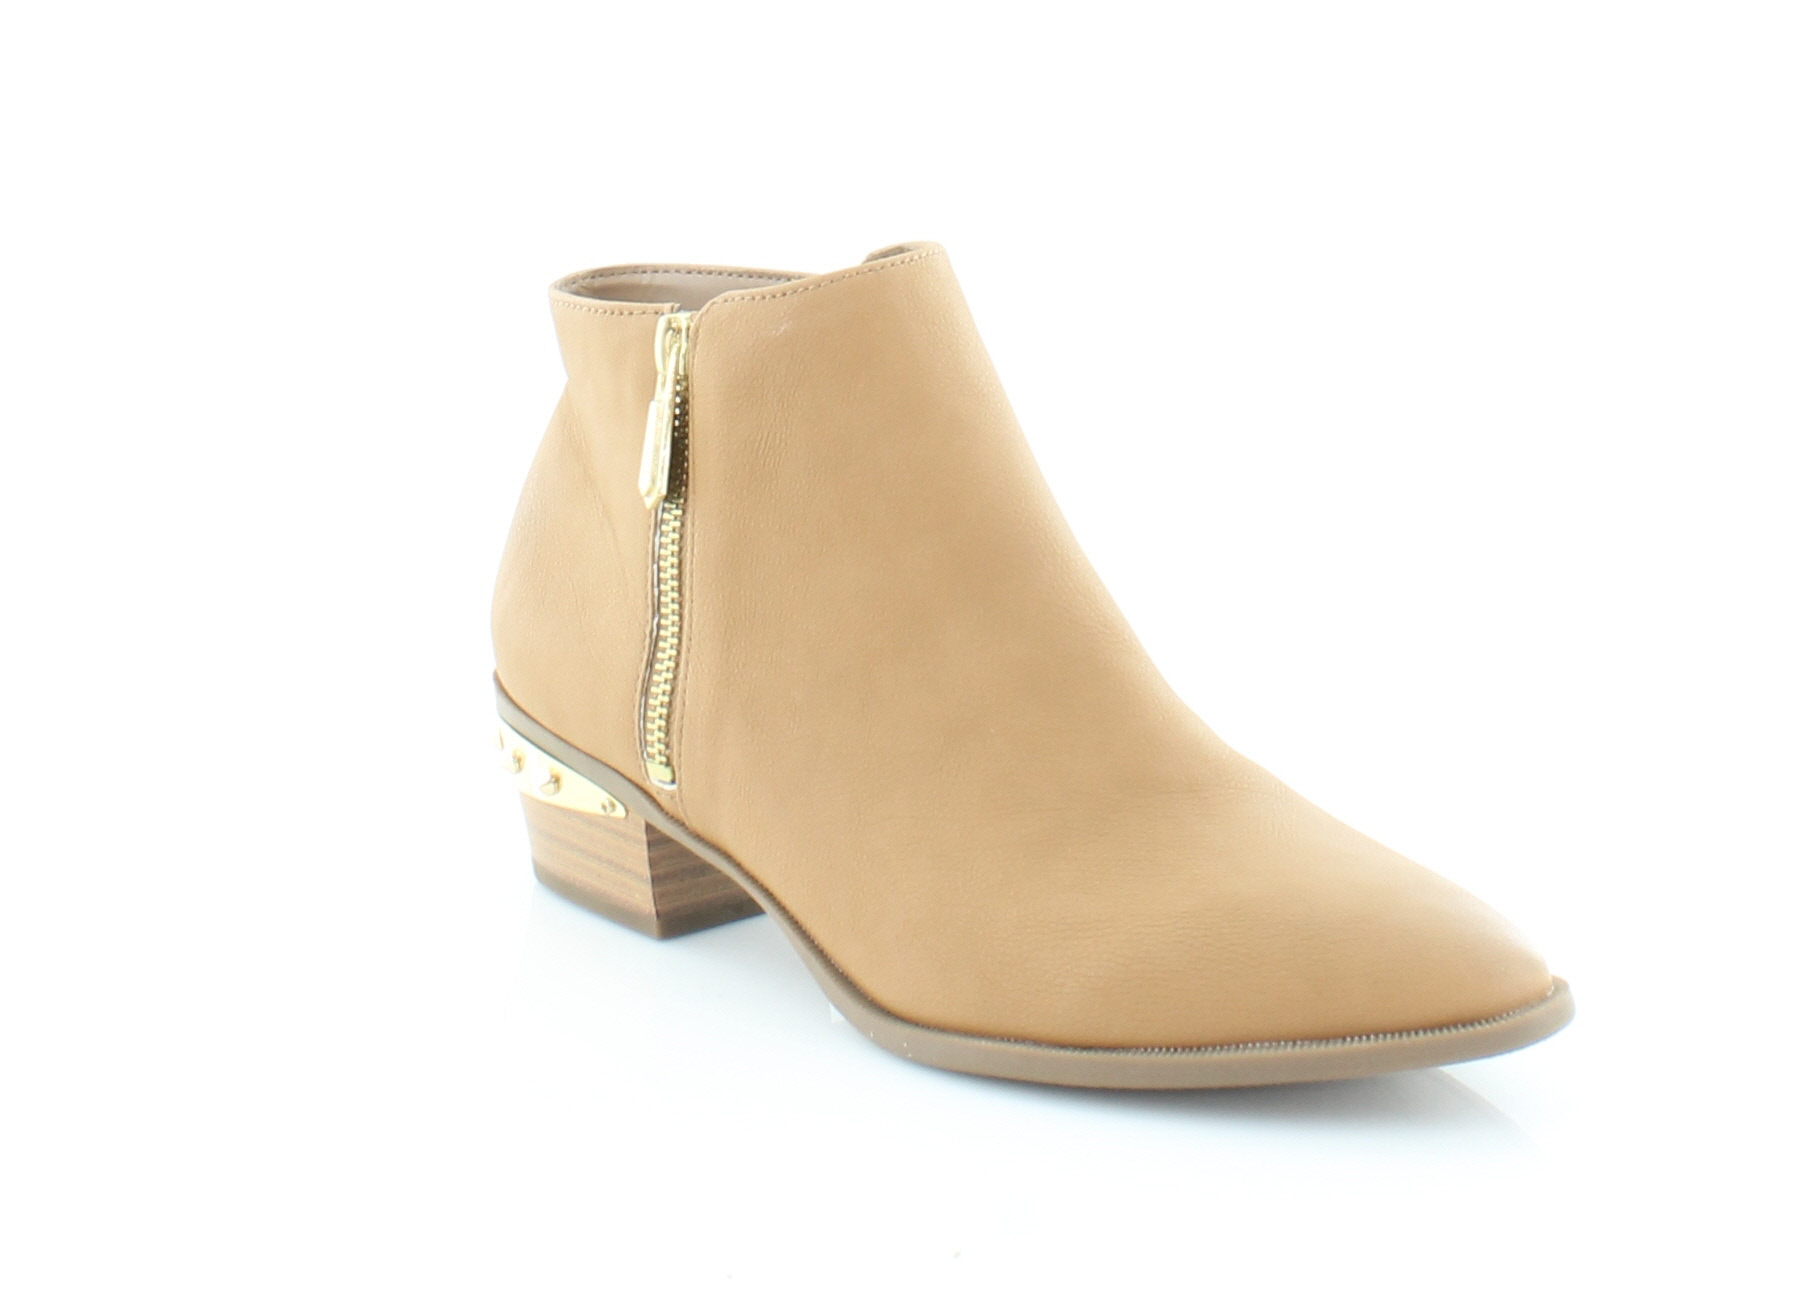 236d0c49c0fd50 Circus by Sam Edelman New Holt Brown Womens Shoes Size 7.5 M Boots ...